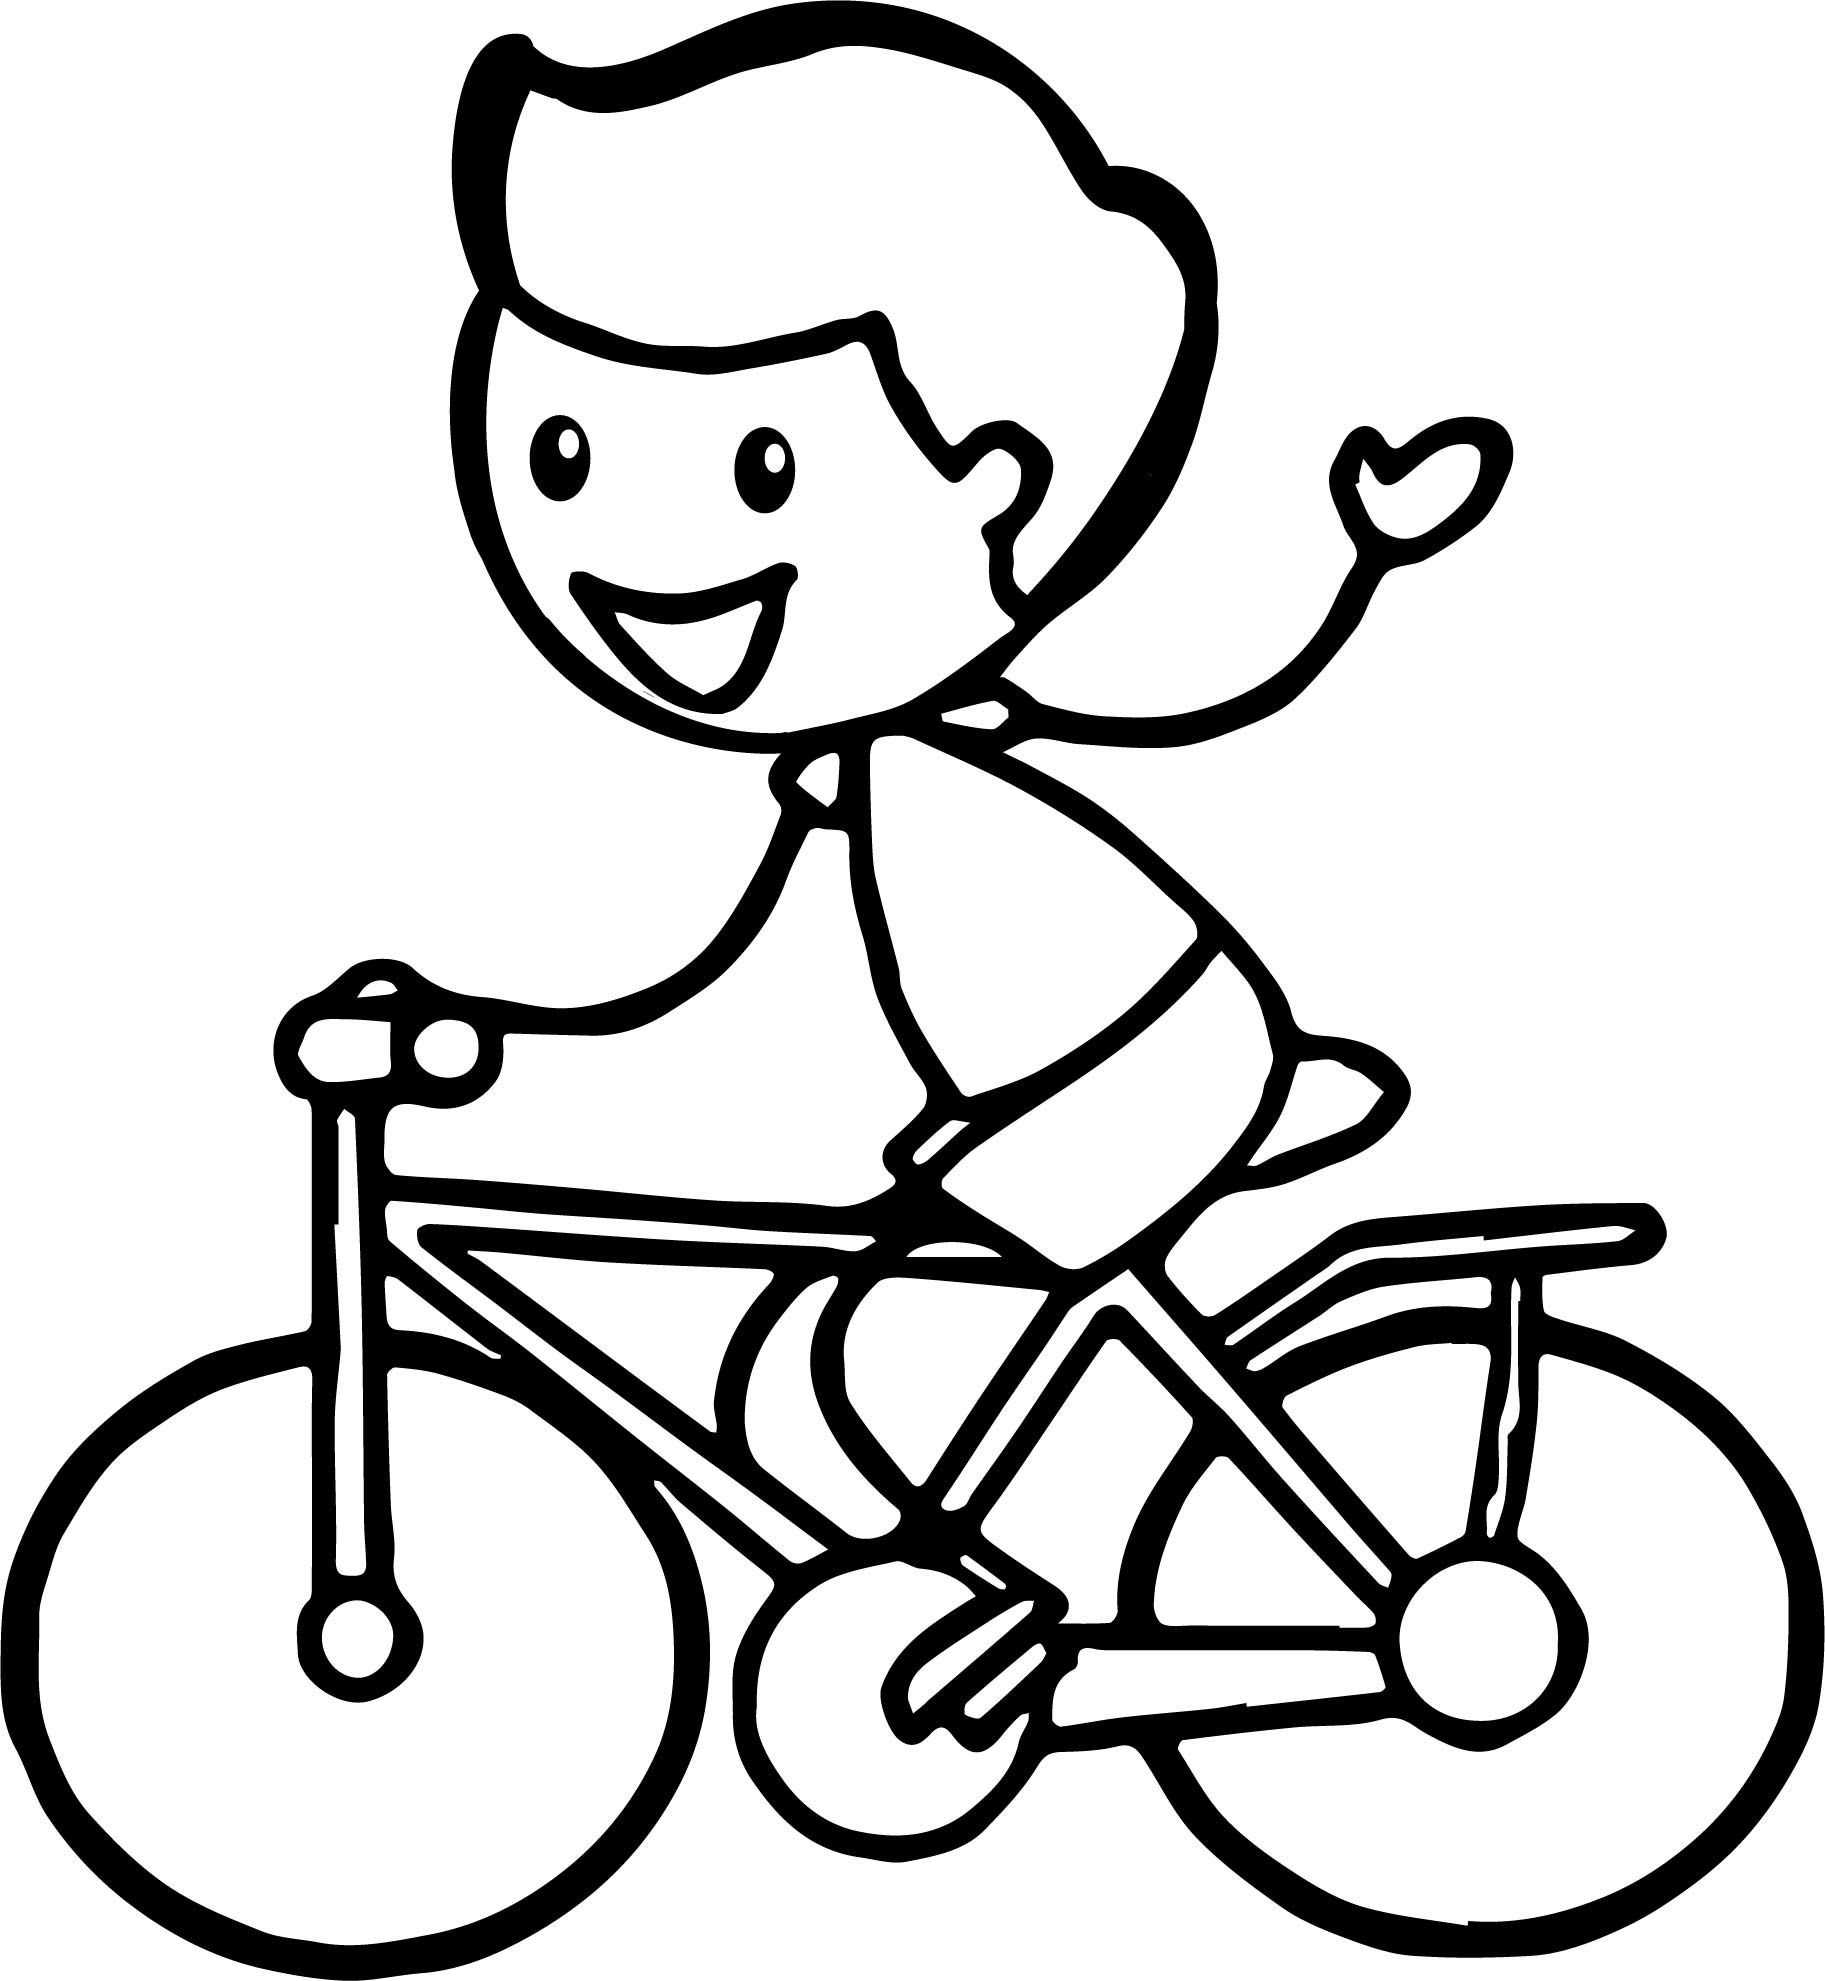 Nice Stick Figure Boy Cycling Riding Biycle Coloring Page Coloring Pages Coloring Pages For Kids Bible Coloring Pages